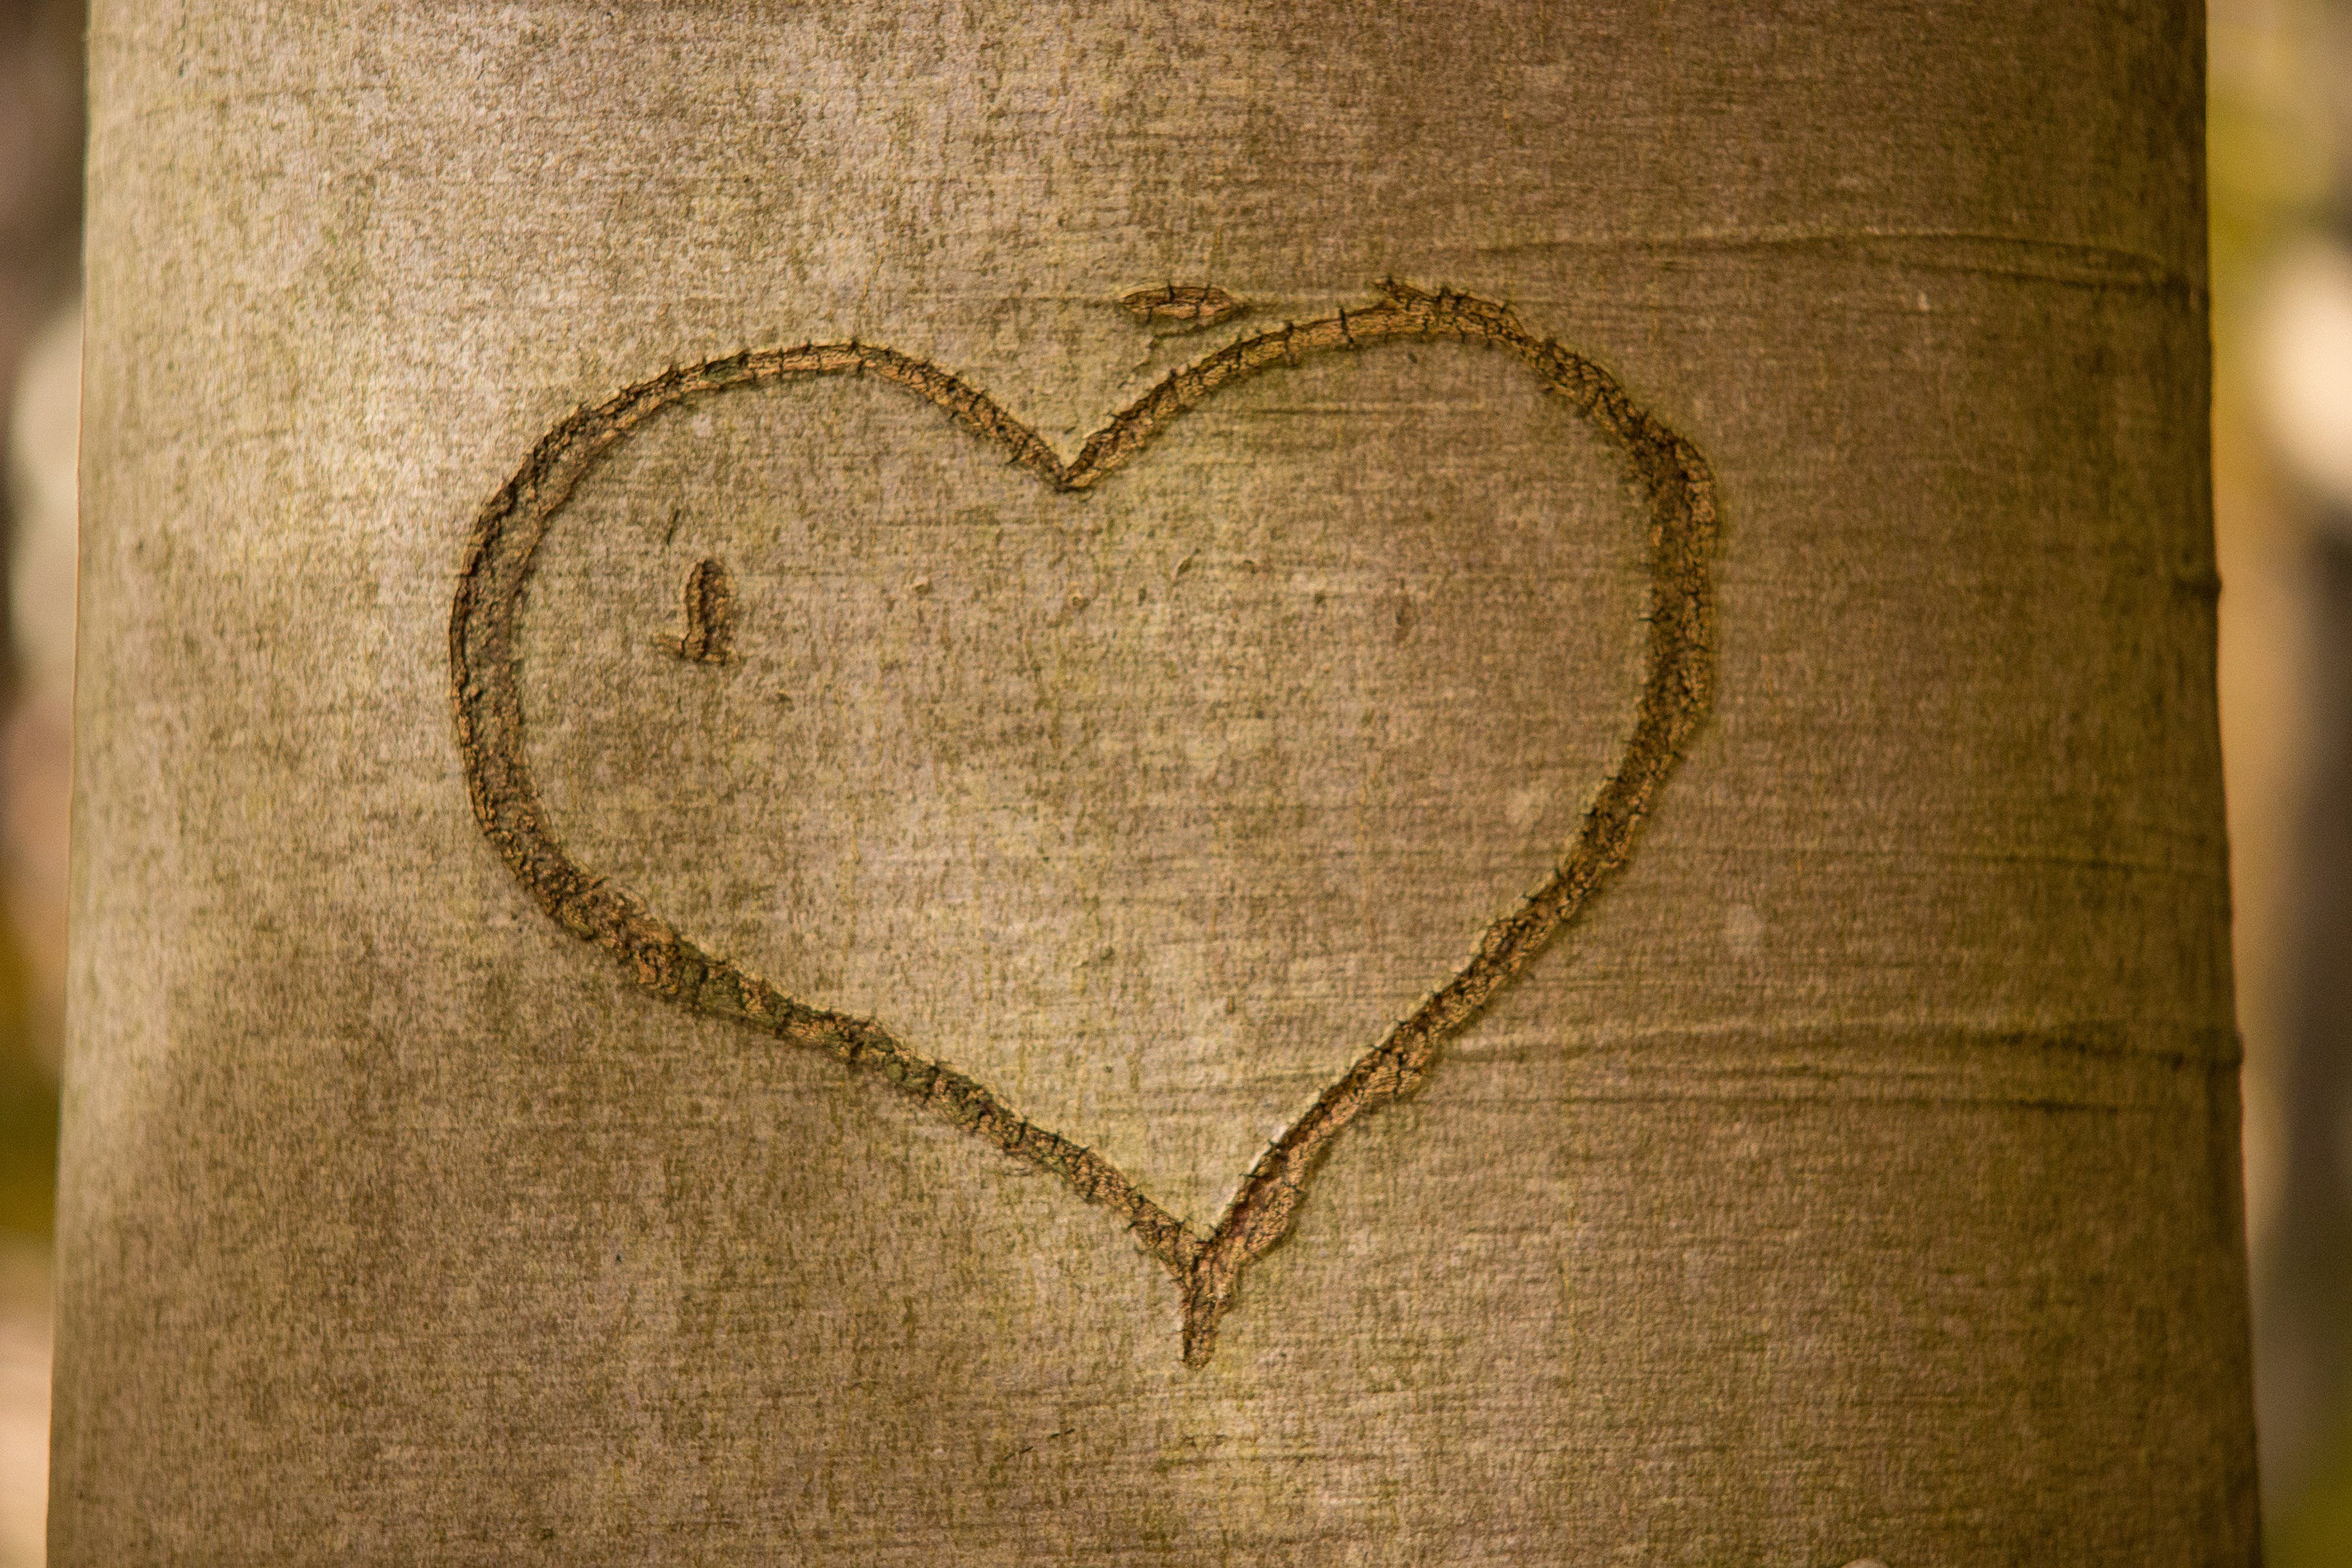 Brown Tree Husk With Heart in Close-up Photo